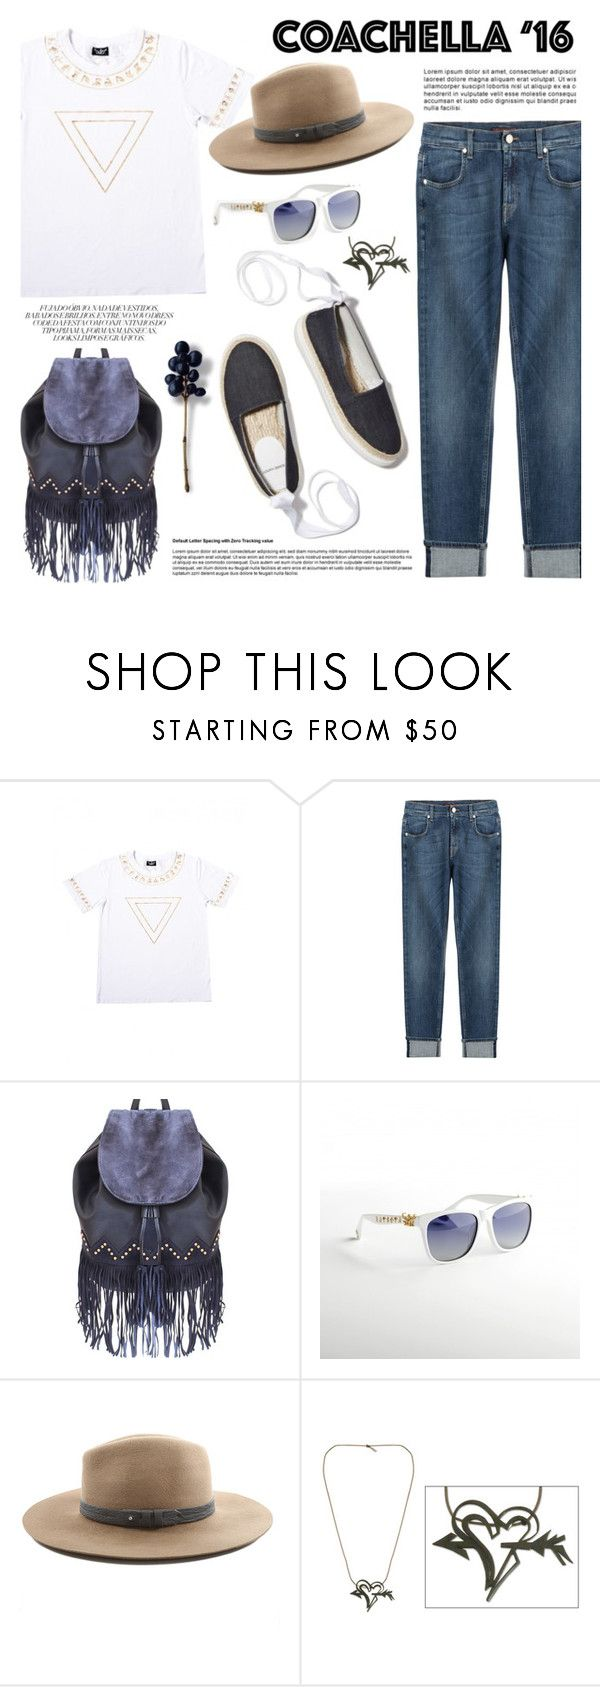 """""""Pack for Coachella!"""" by wigicollection ❤ liked on Polyvore featuring 7 For All Mankind, Liquorish, Pierre Hardy, rag & bone, NOVICA, contestentry, wigicollection, wigier and packforcoachella"""